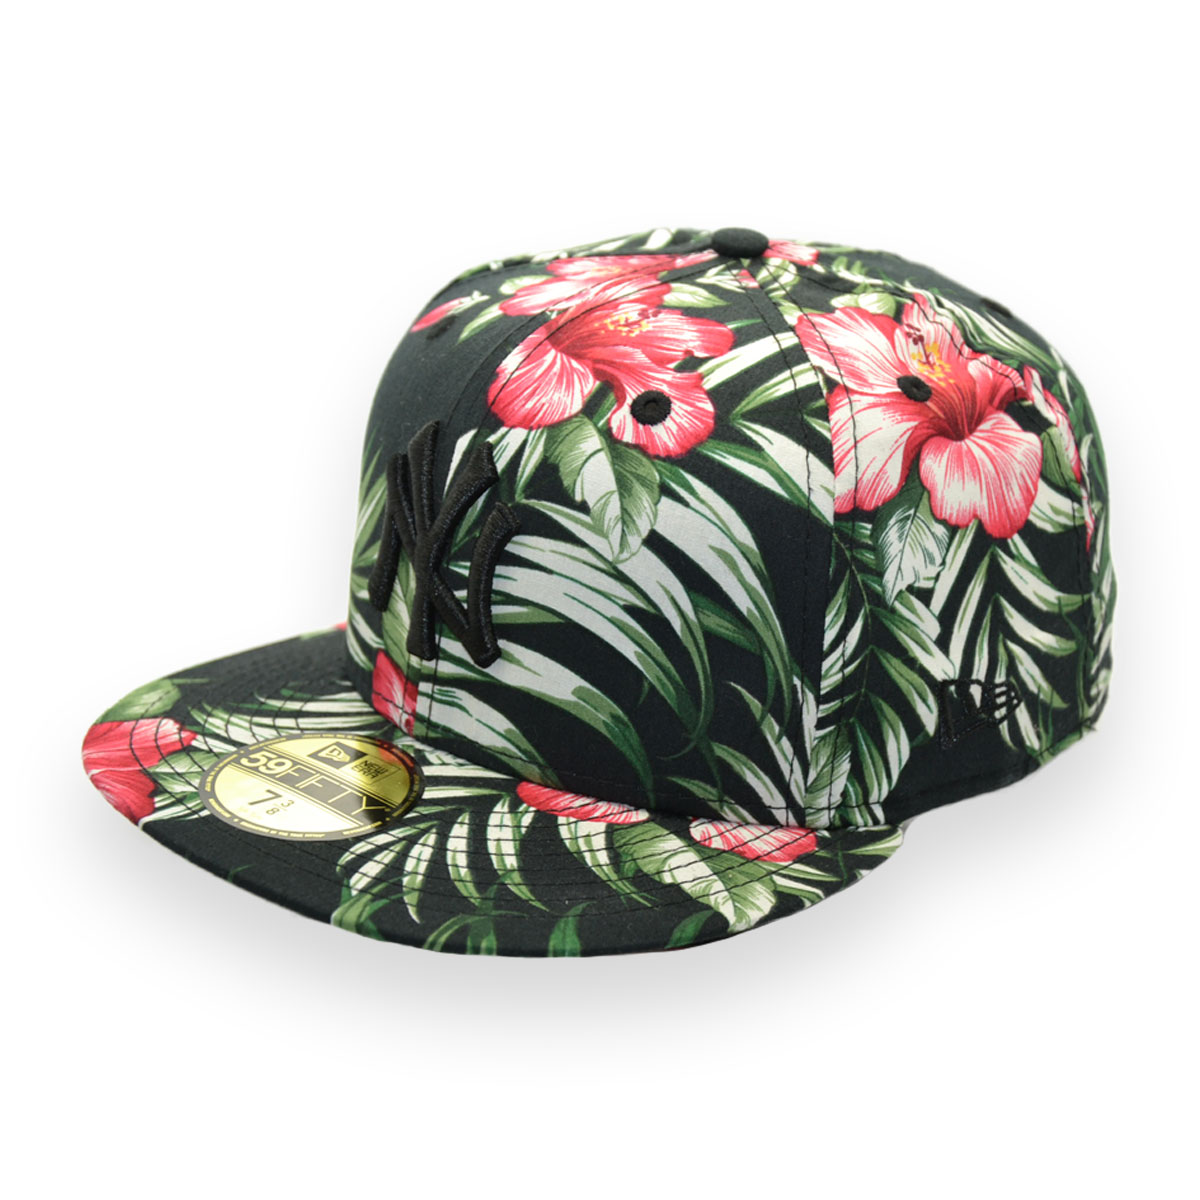 563c0b3af88 NEW ERA JAPAN NEW YORK YANKEES ALOHA FLORAL 59FIFTY MLB CAP - MyCraze